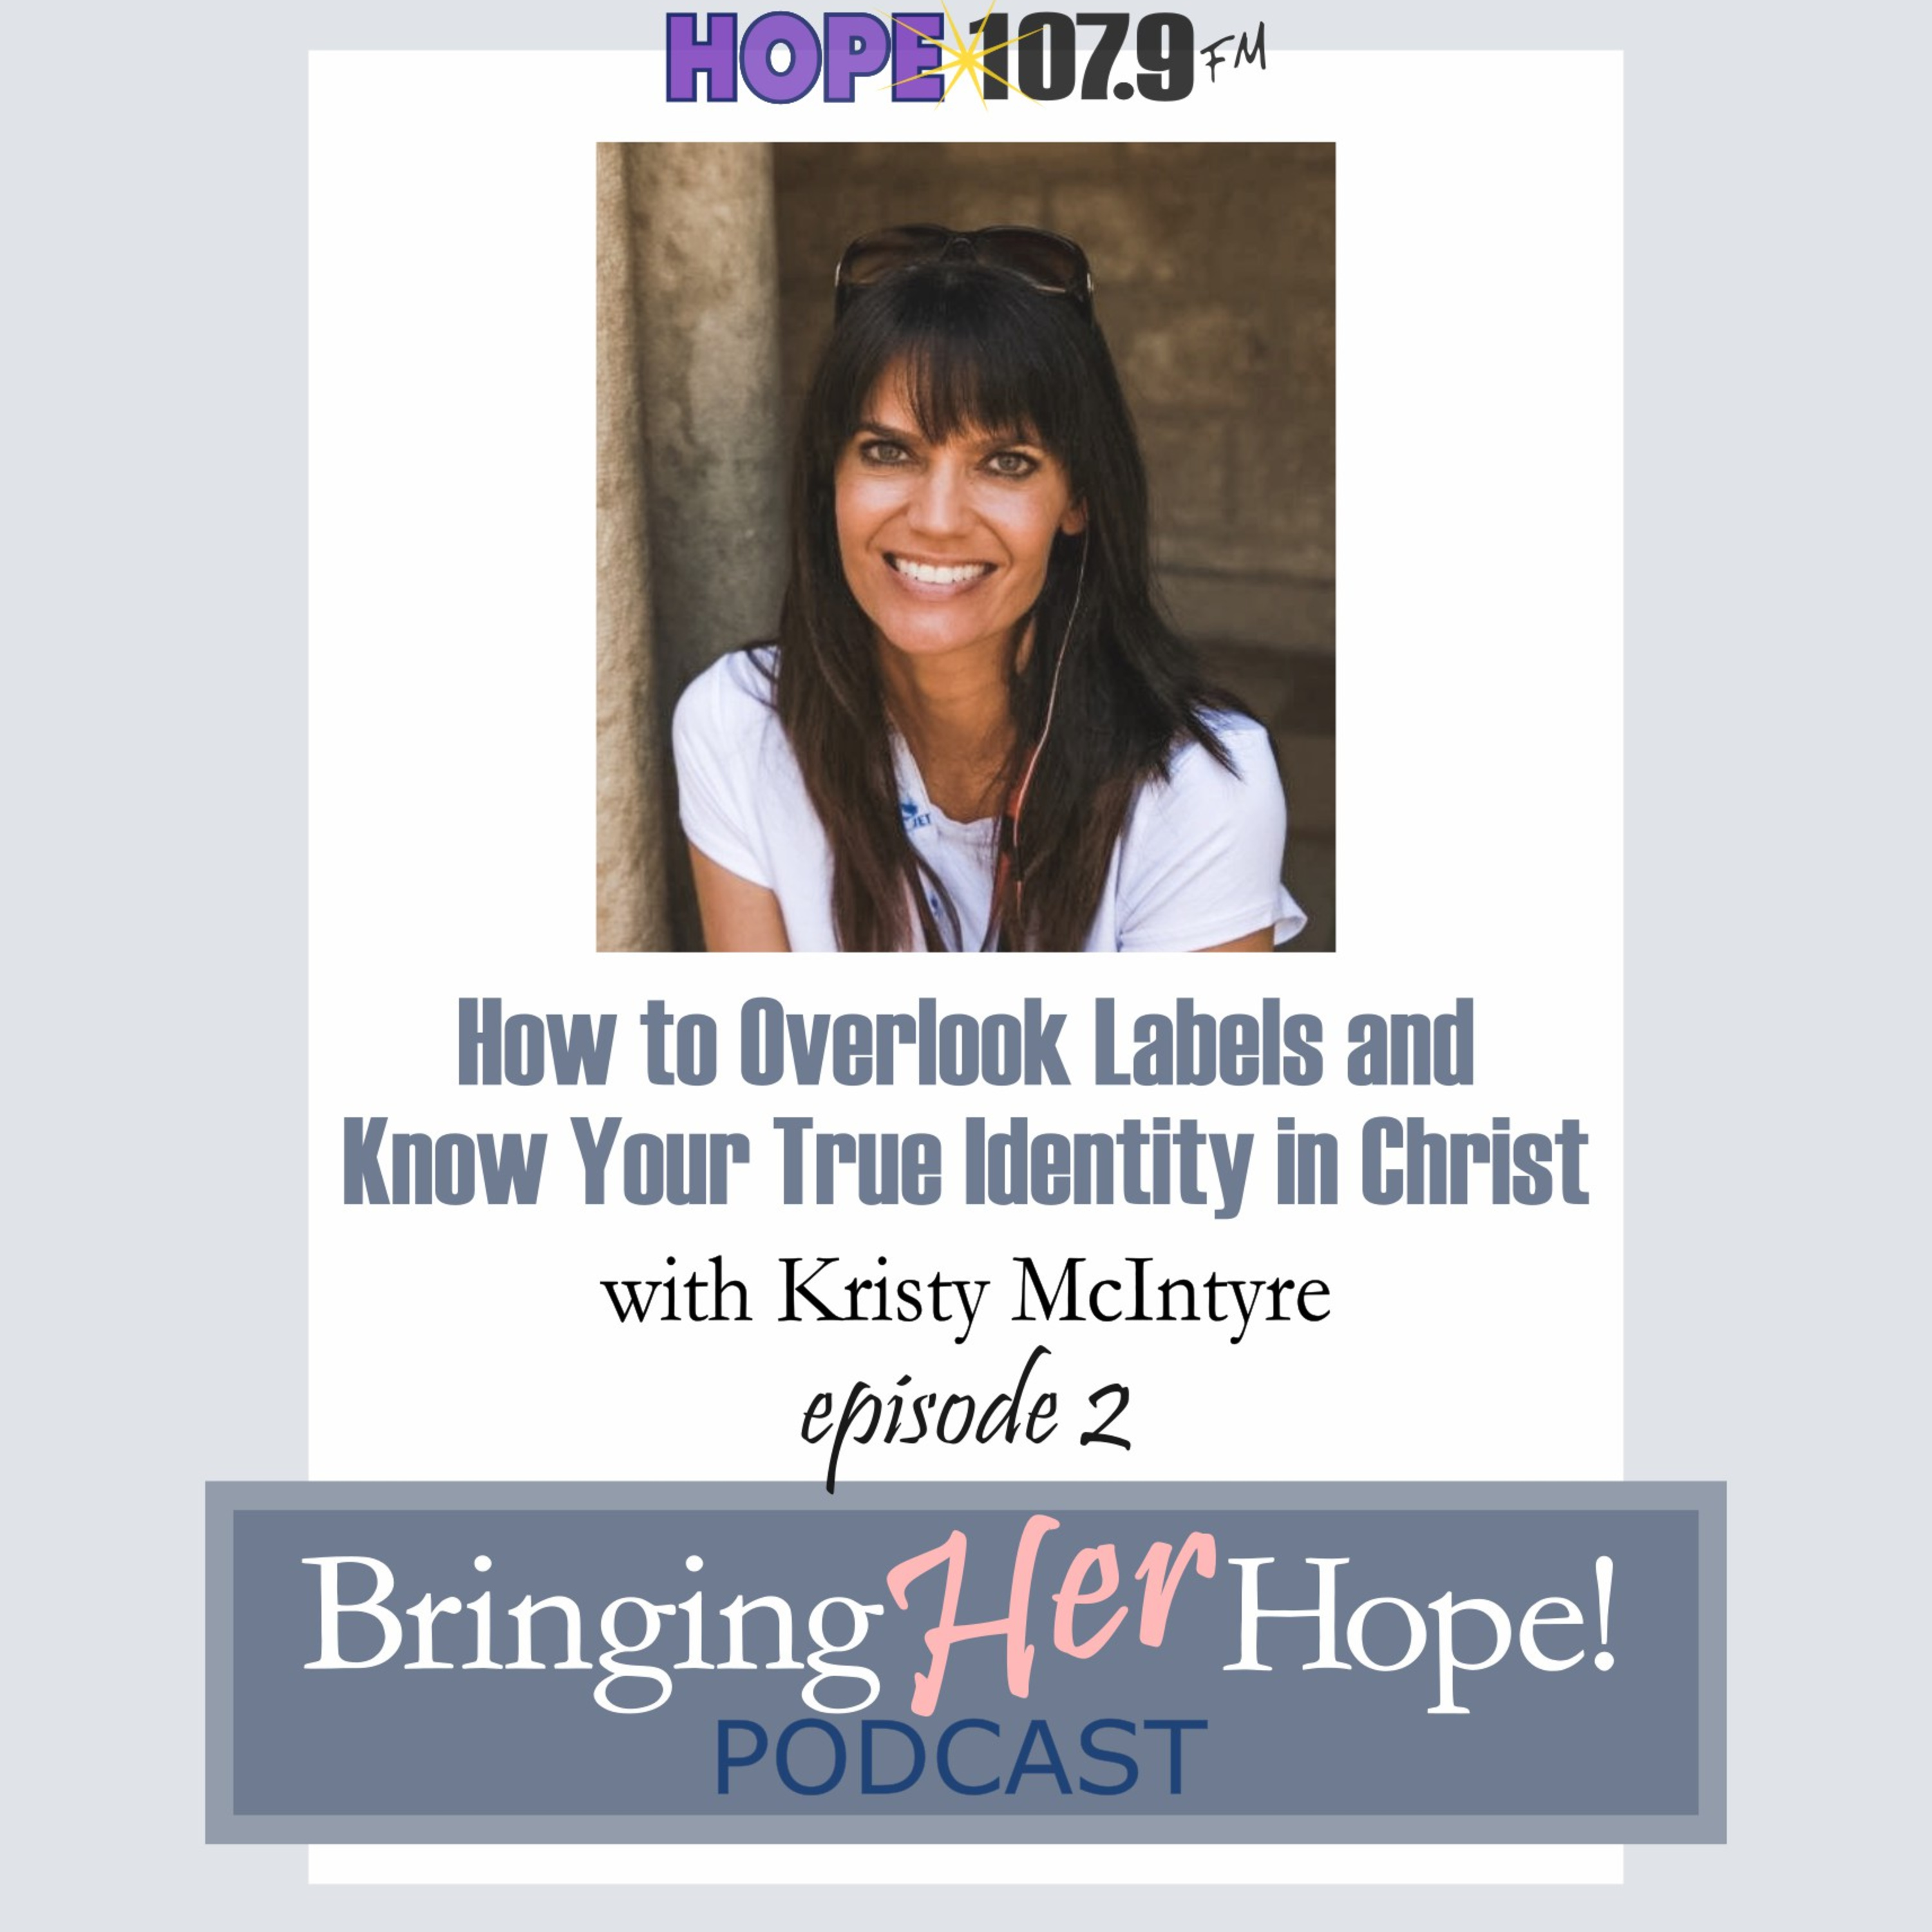 Episode 2: How to overlook labels and know your true identity in Christ with special guest Kristy McIntyre